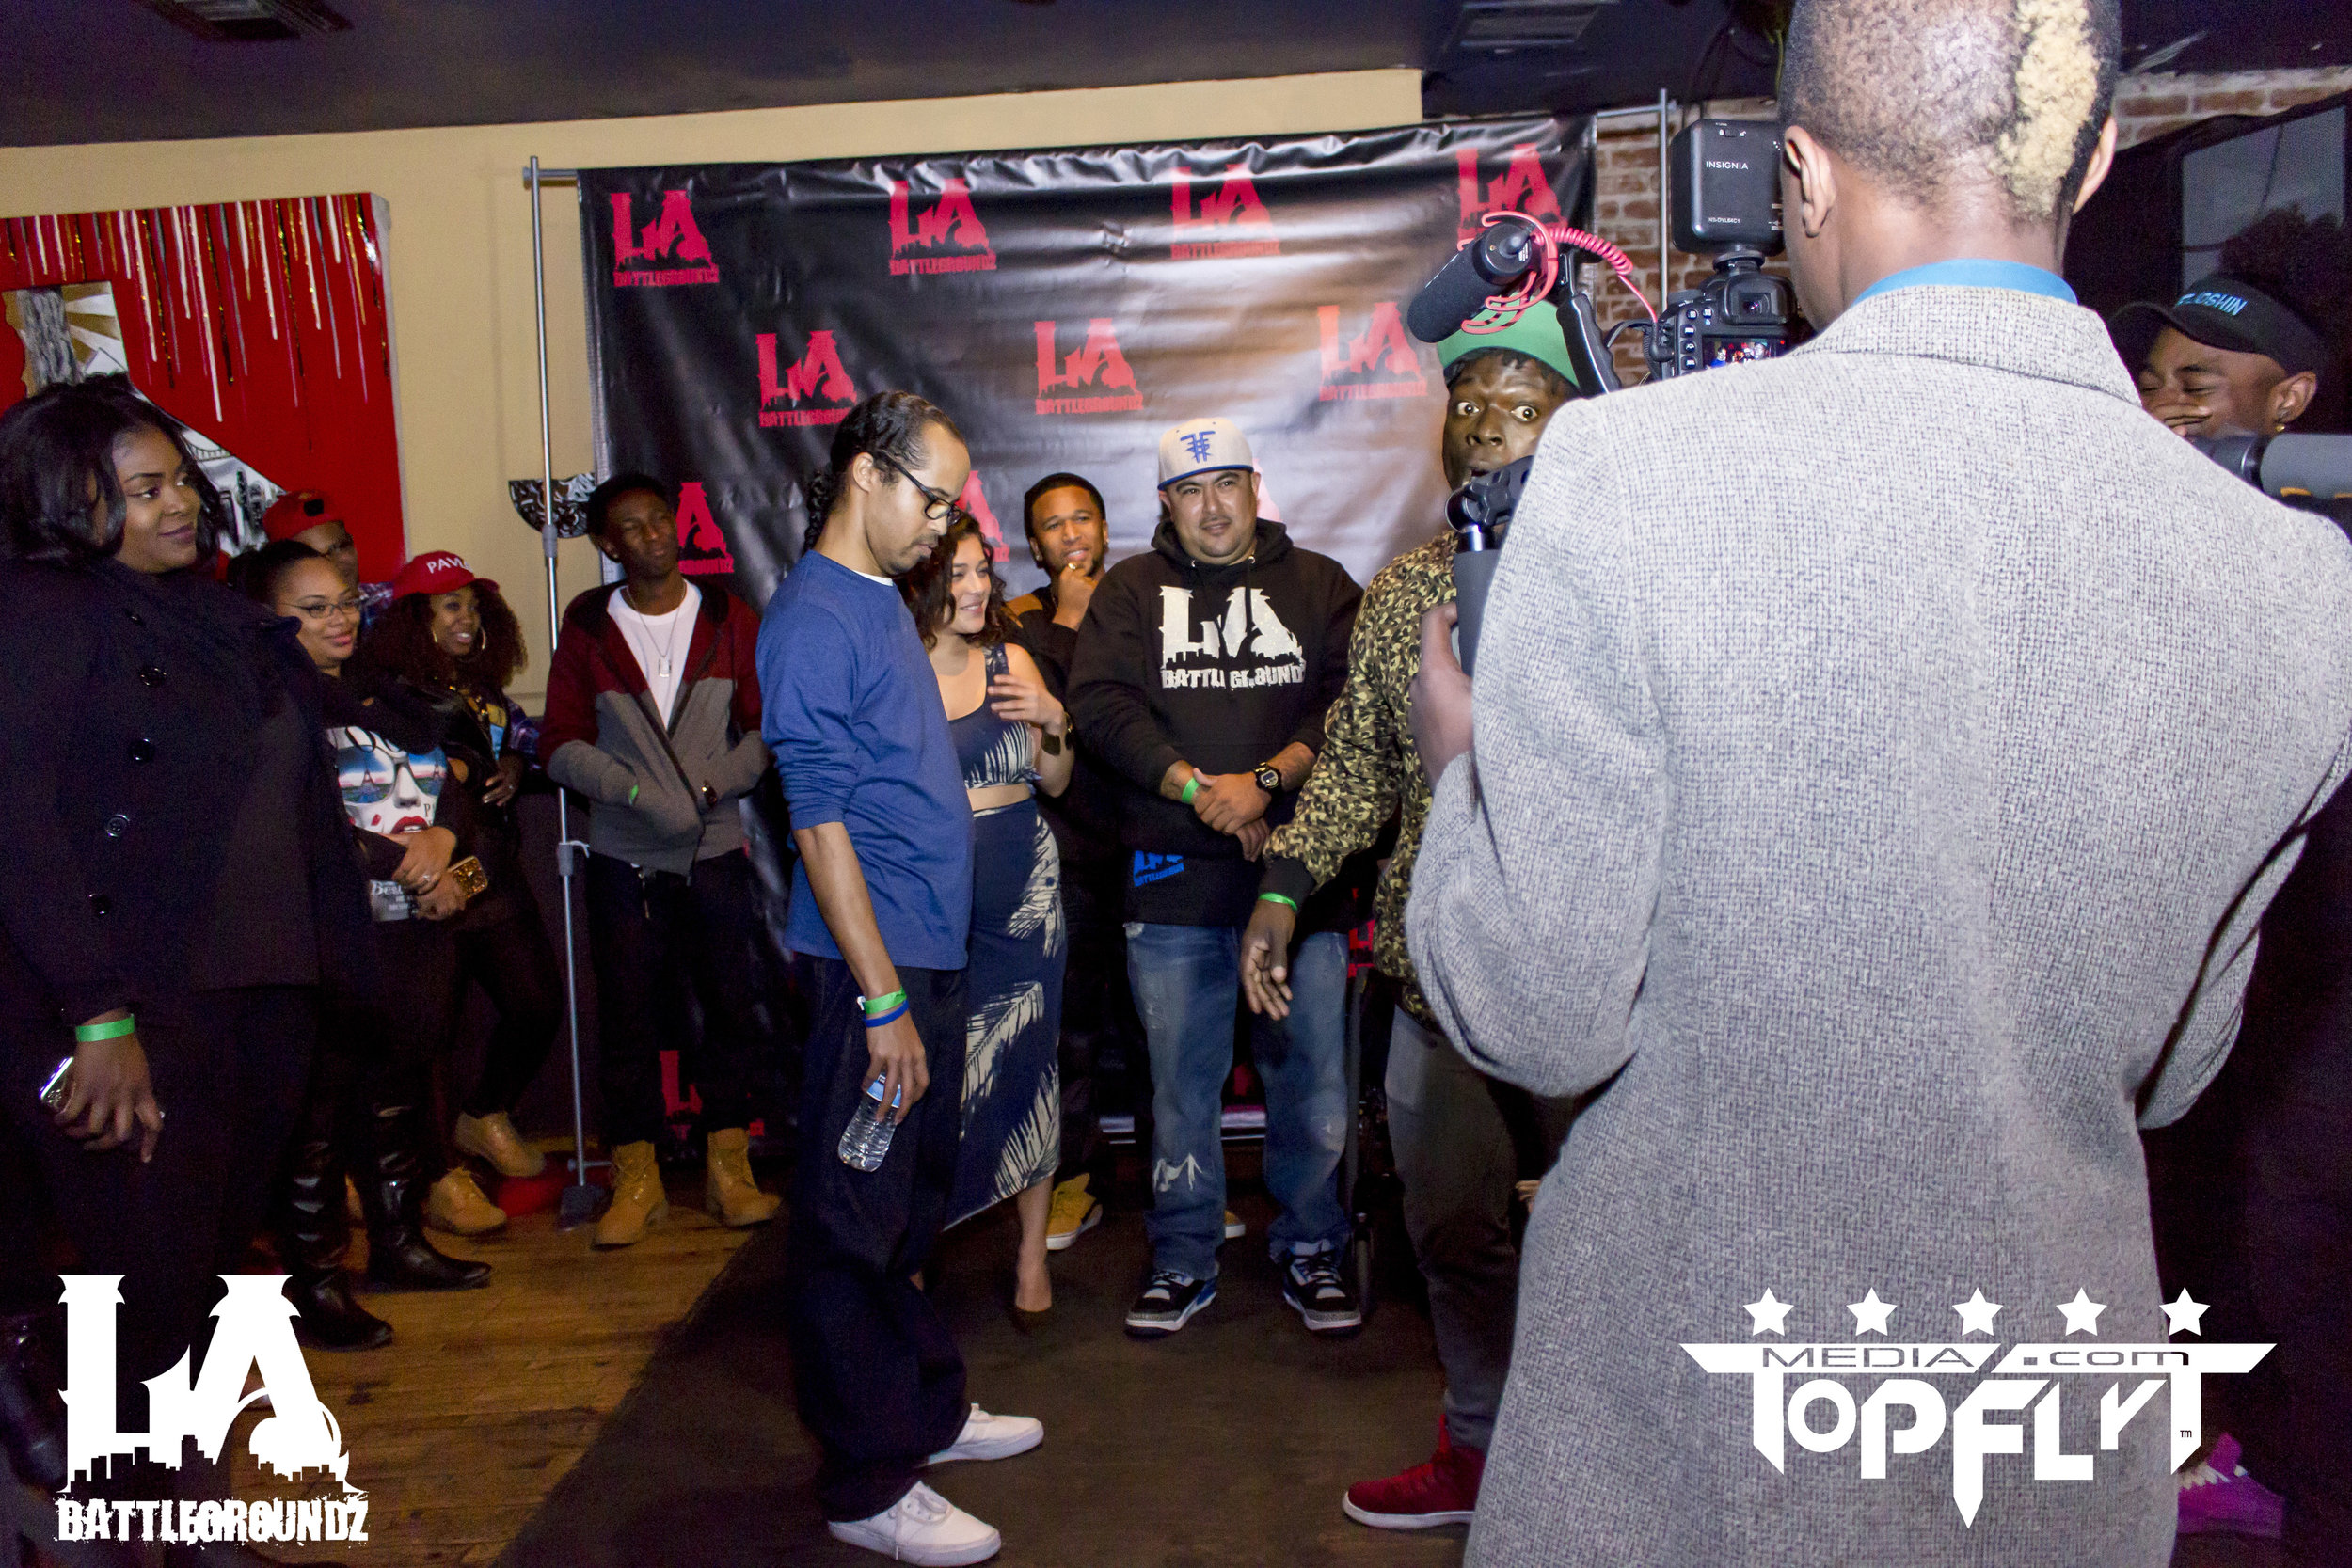 LA Battlegroundz - Decembarfest - The Christening_15.jpg